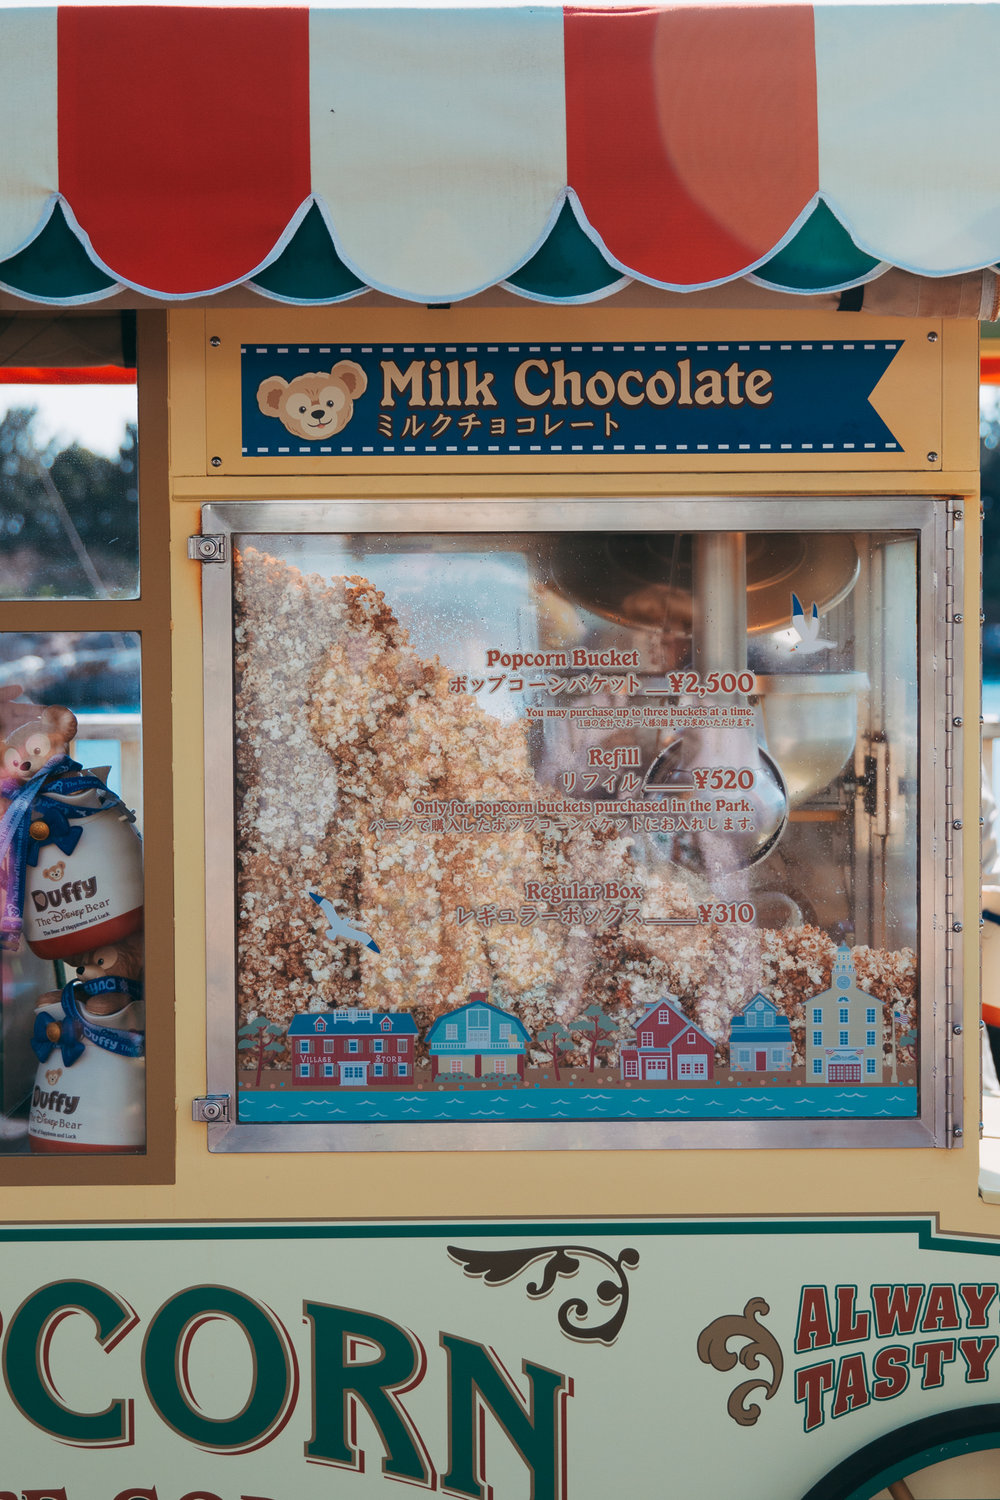 Milk Chocolate Popcorn found in front of Cape Cod Cook-off  (¥500) Just like Tokyo Disneyland's milk chocolate popcorn, the smell of the chocolate is very enticing. The cart is also sure to bring in any Duffy fan.